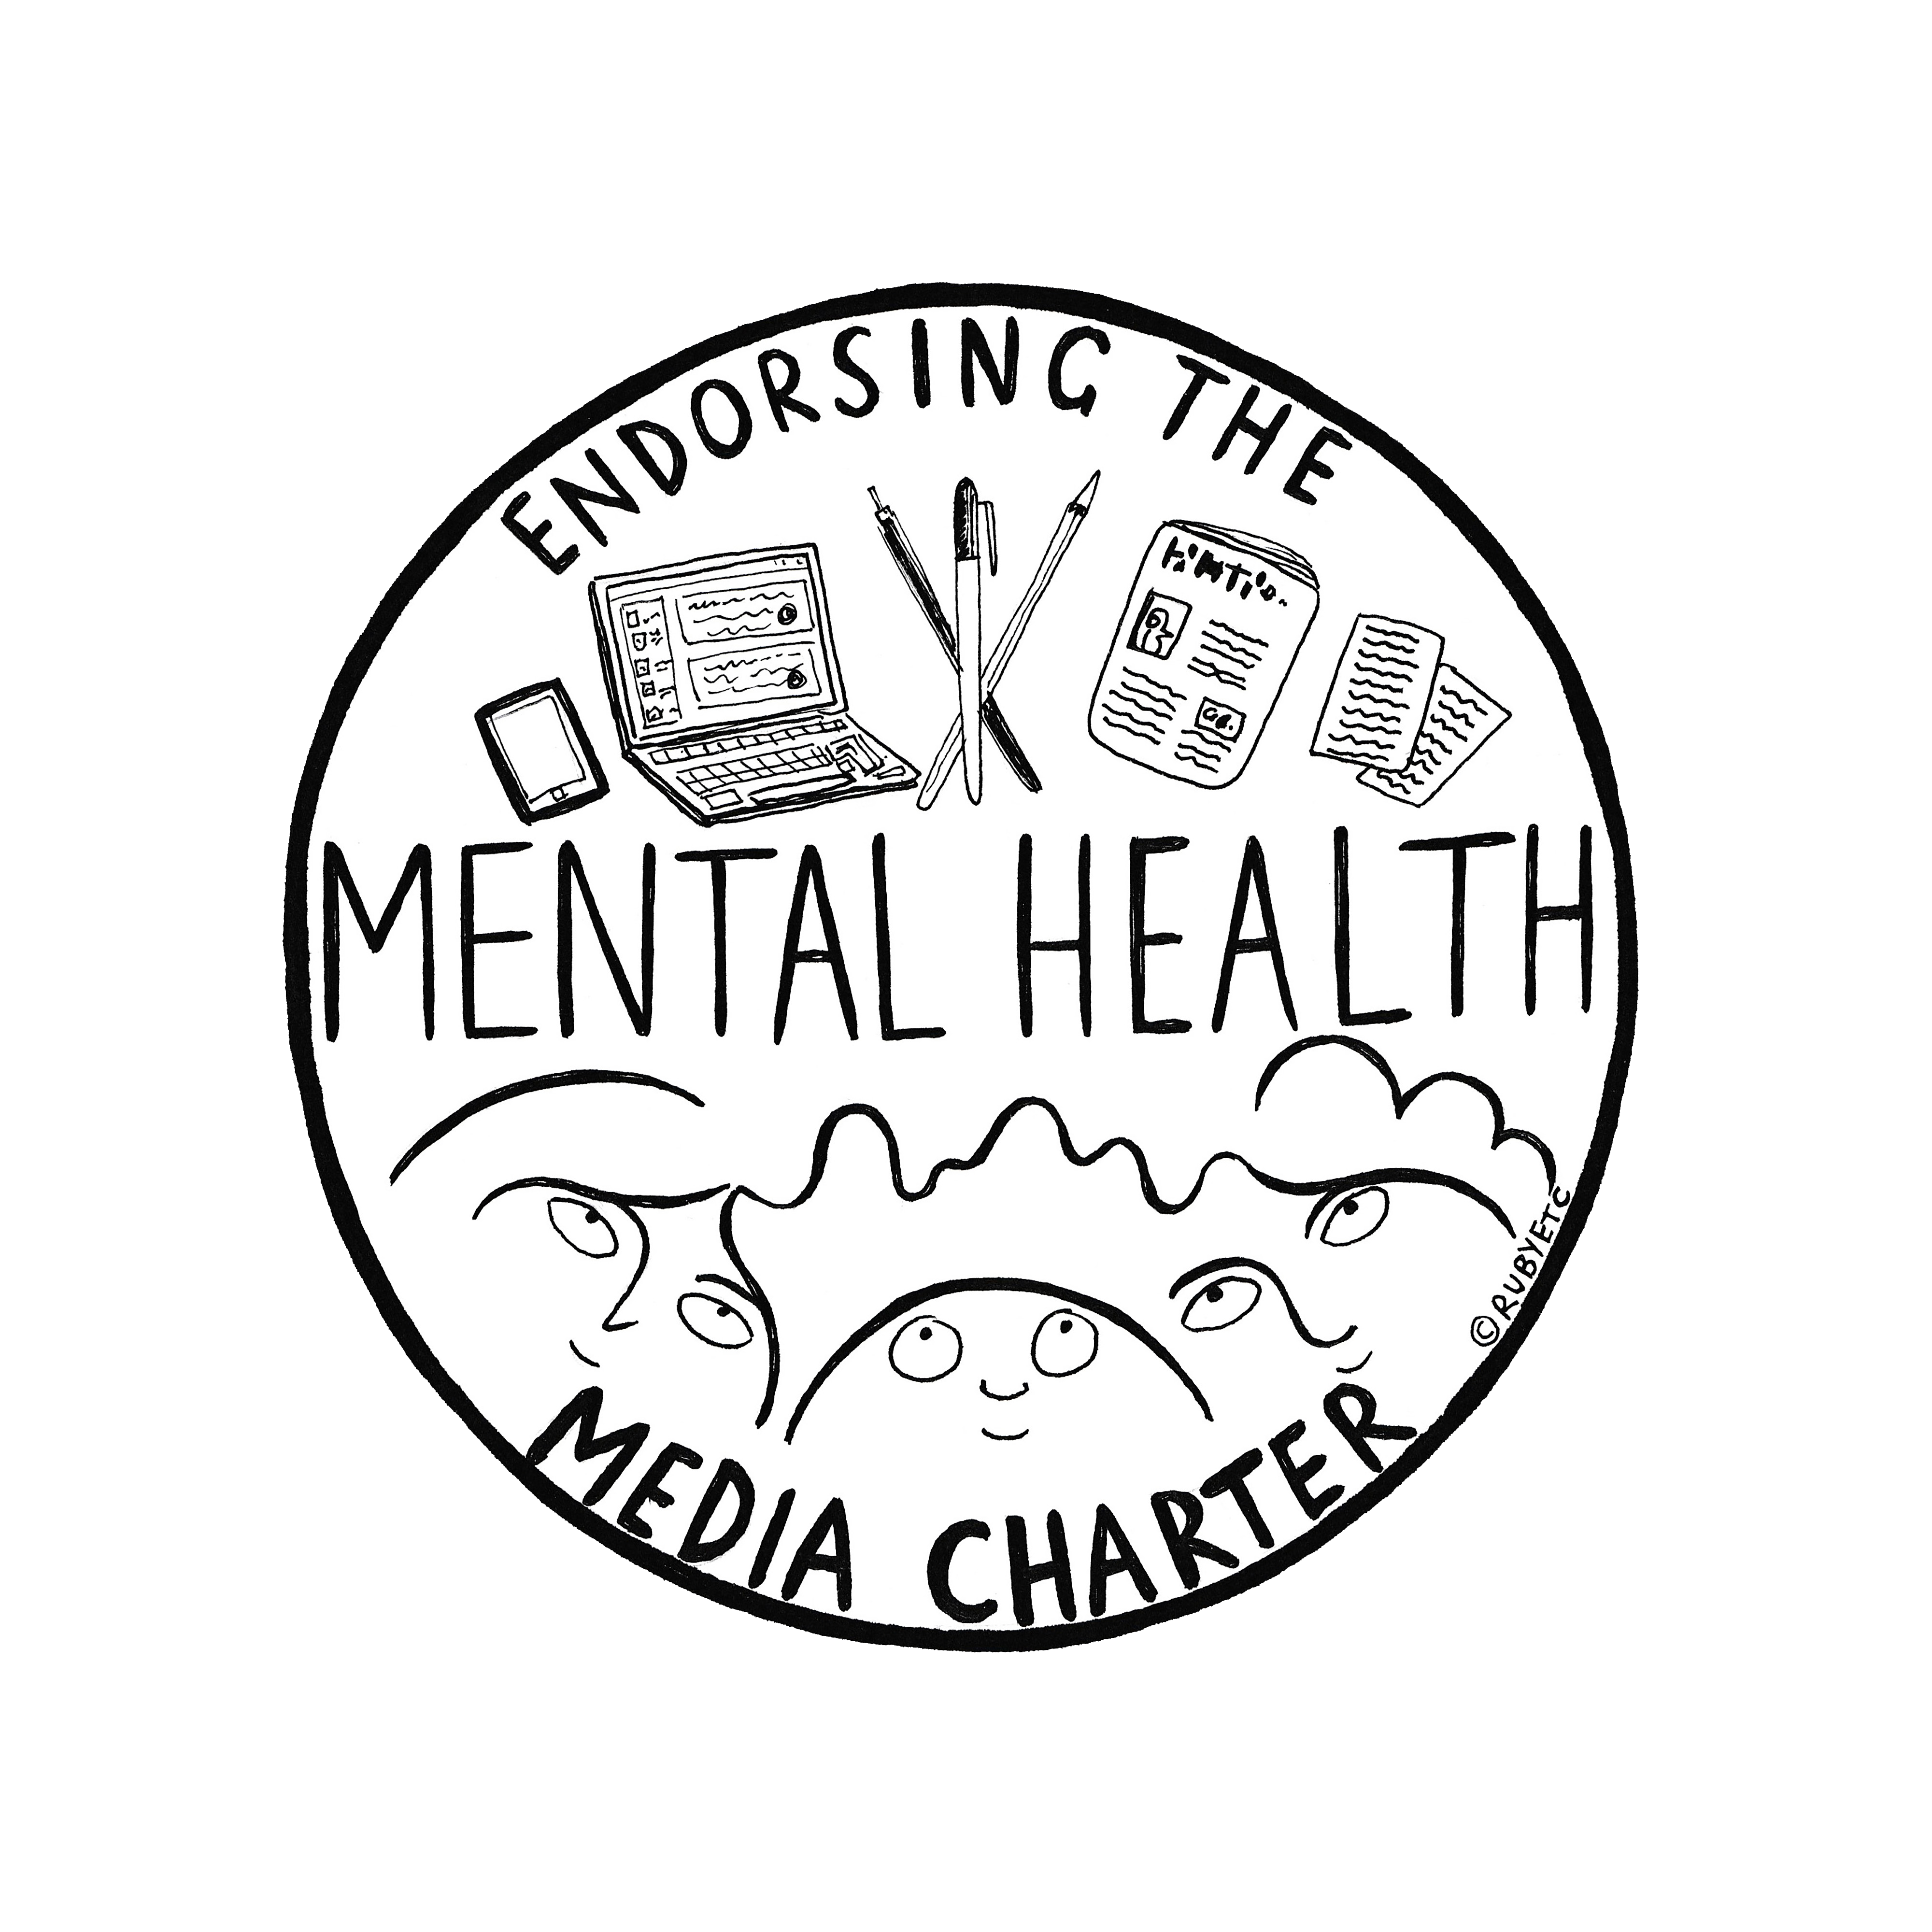 T drawing mental health. News the kidstime foundation